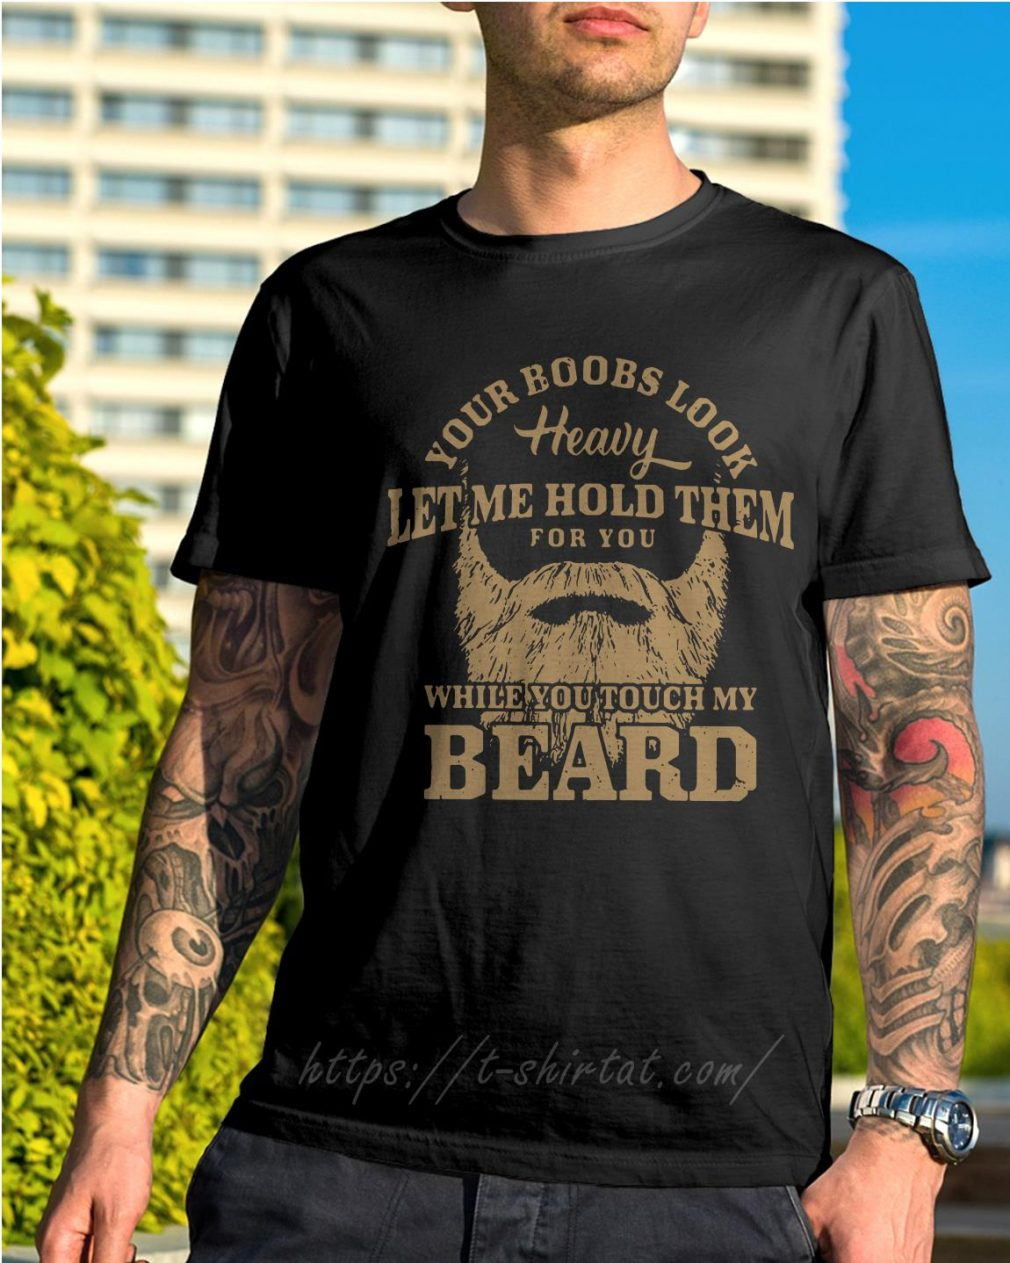 Your books look heavy let me hold them for you while you touch my beard shirt